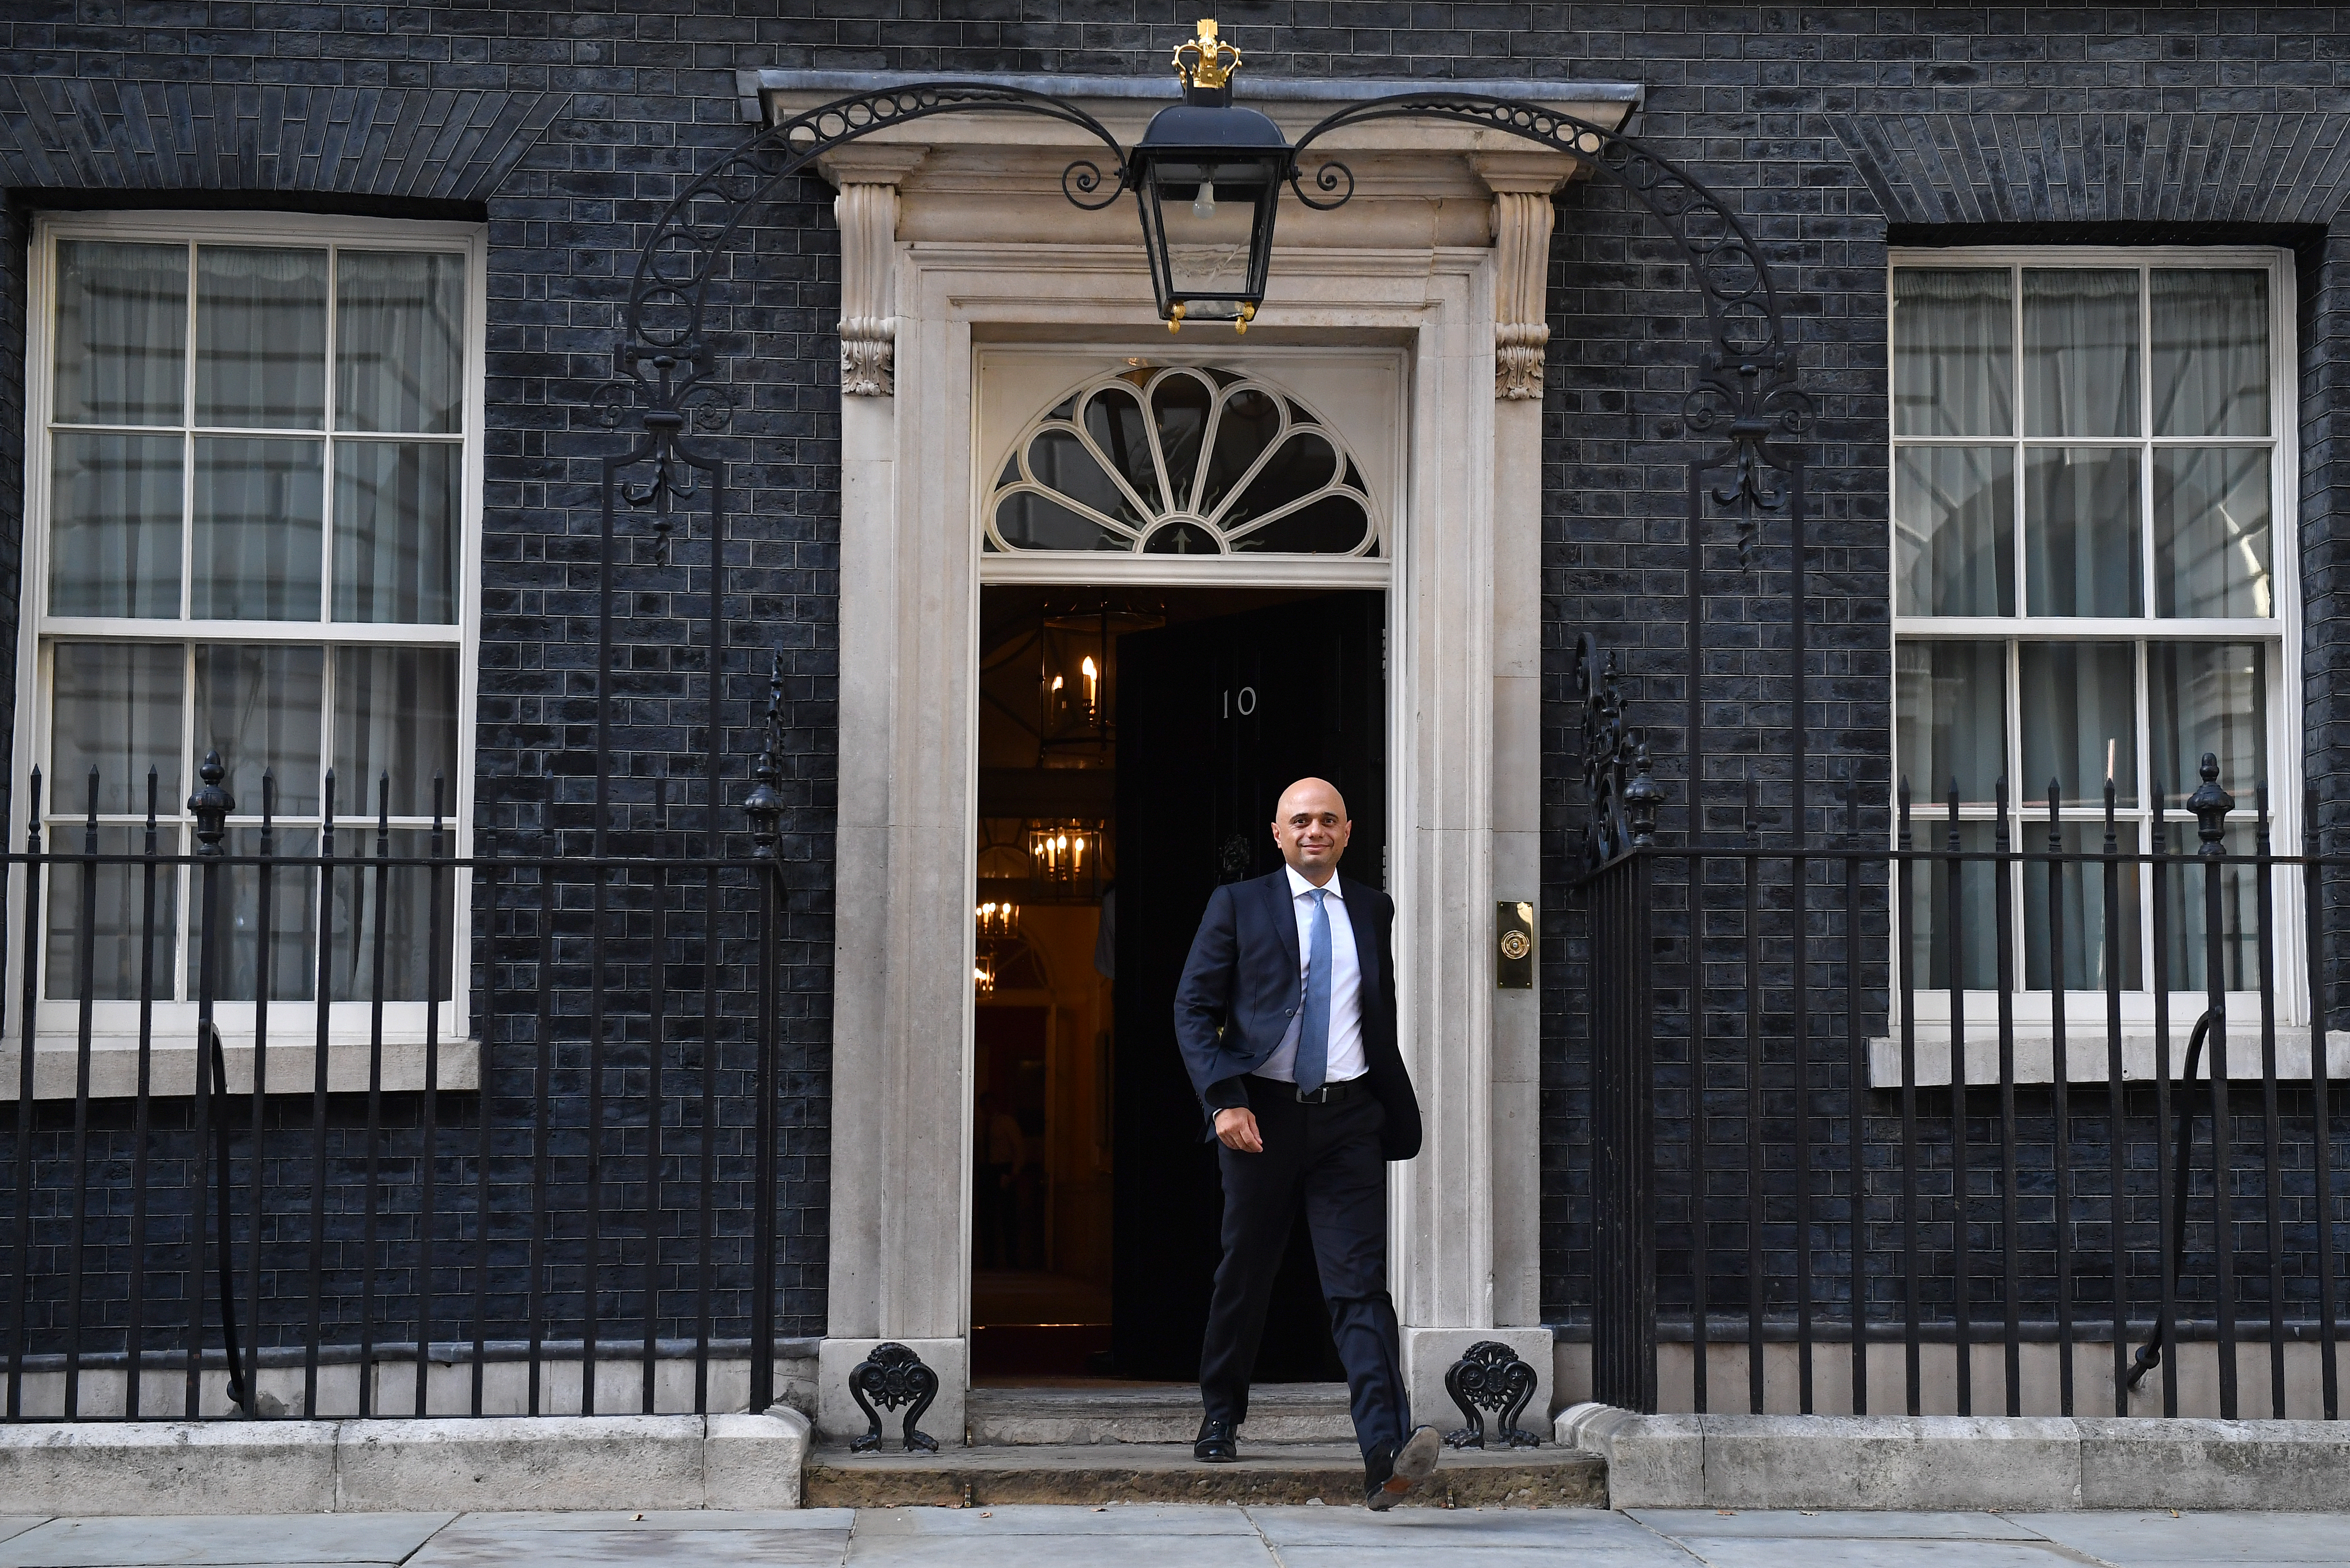 LONDON, ENGLAND - JULY 24: Sajid Javid leaves Number 10, Downing Street after being appointed Chancellor of the Exchequer on July 24, 2019 in London, England. Boris Johnson took the office of Prime Minister of the United Kingdom of Great Britain and Northern Ireland this afternoon and immediately began appointing new Cabinet Ministers. Former Foreign secretary and leadership rival Jeremy Hunt returns to the back benches, along with Liam Fox, Jeremy Wright, Penny Mordaunt and Karen Bradley.  (Photo by Jeff J Mitchell/Getty Images)